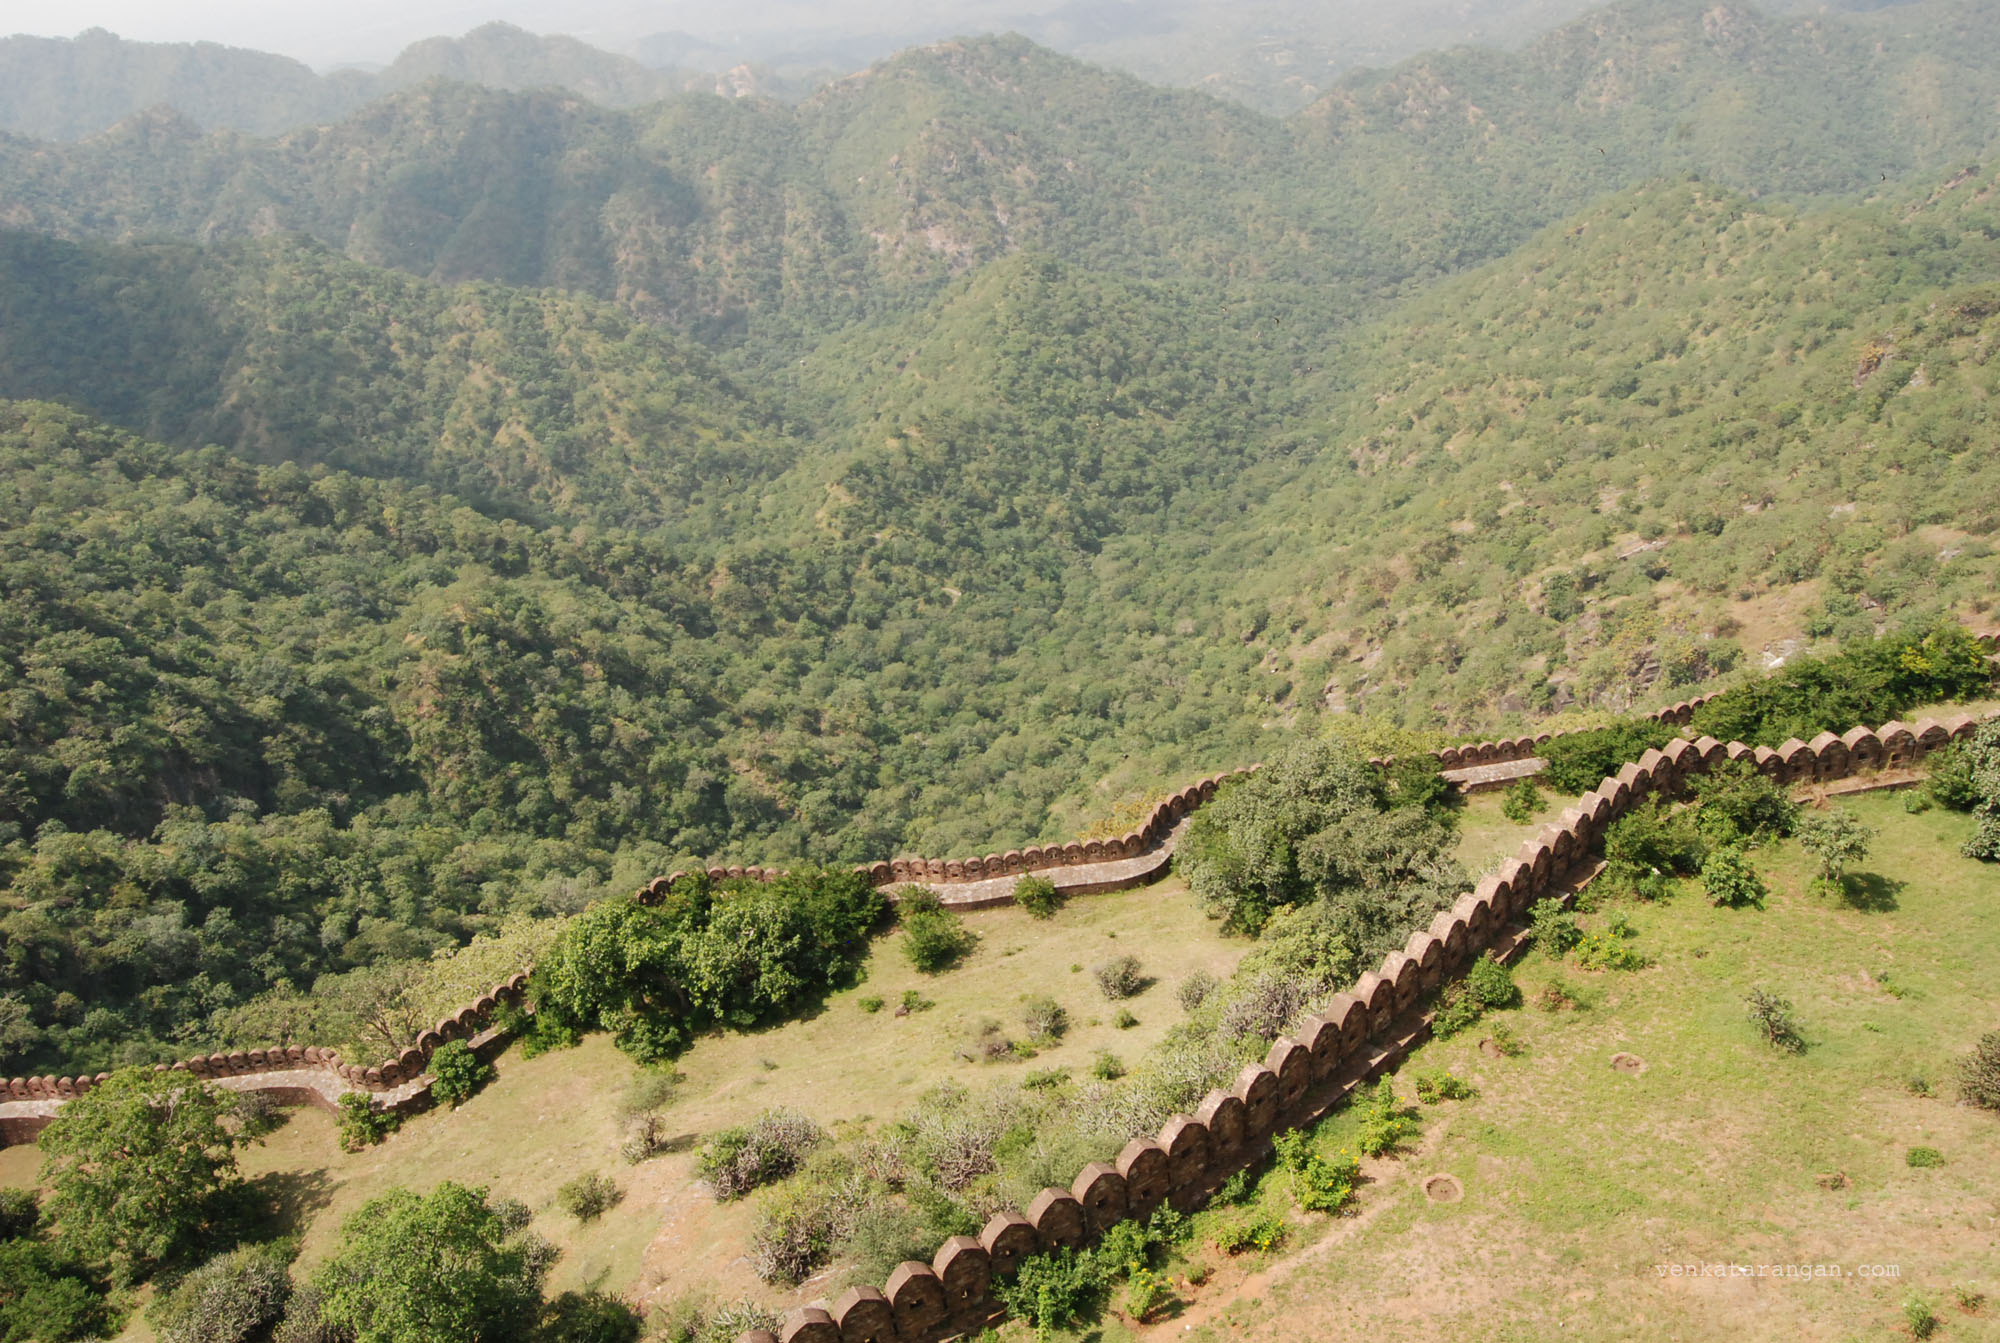 The fort walls of Kumbhalgarh Fort